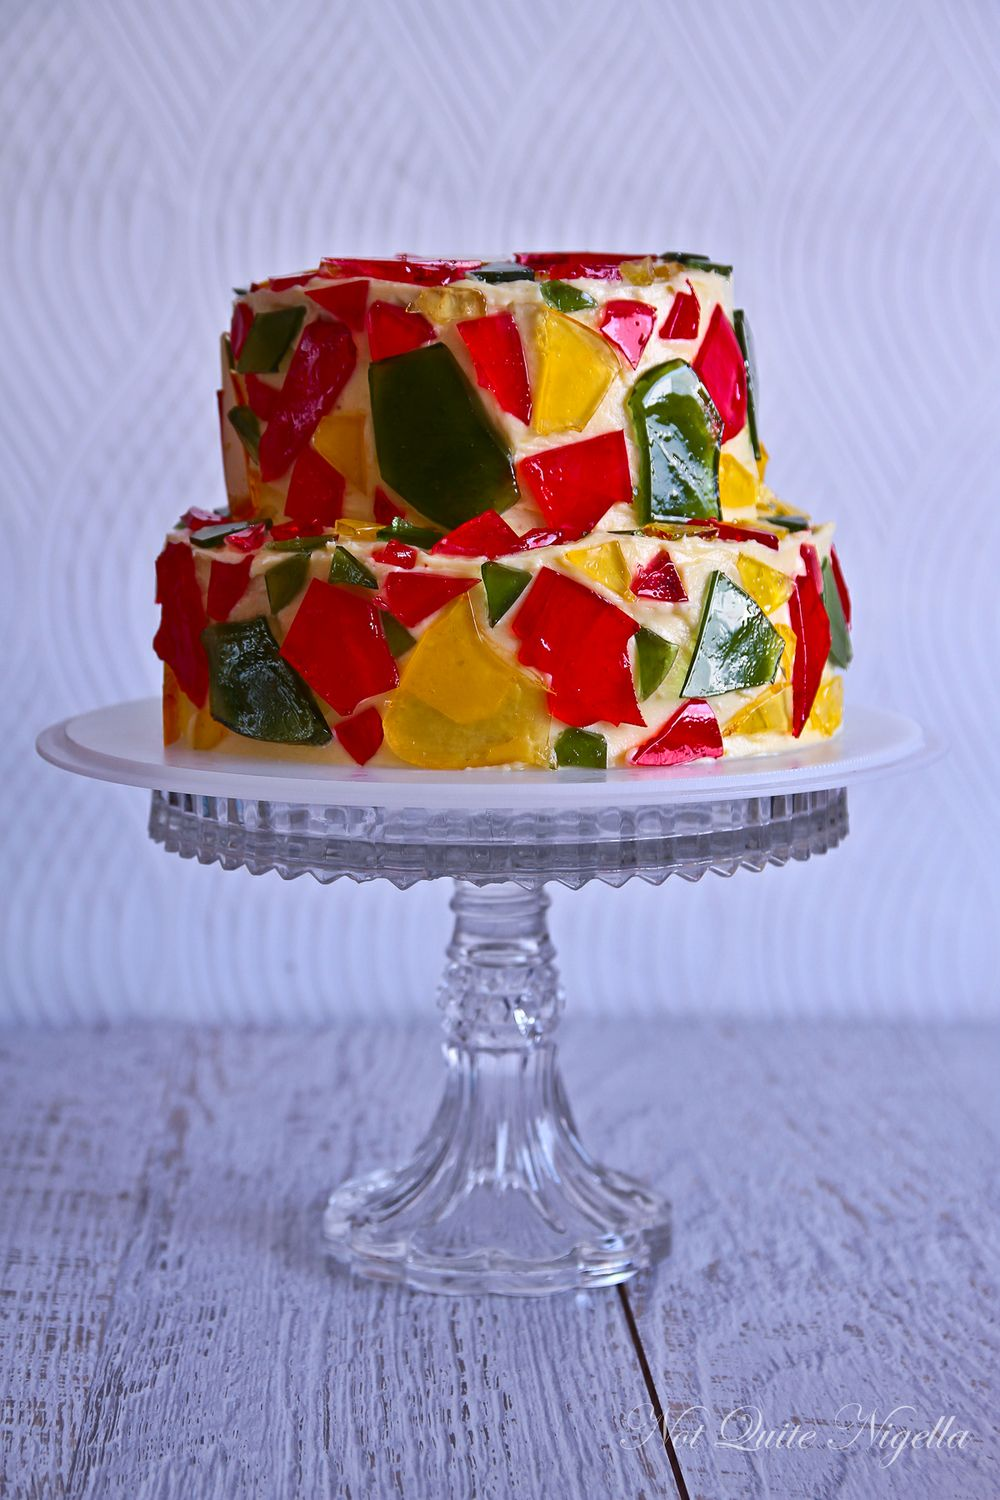 Celebration Stained Glass Cake!